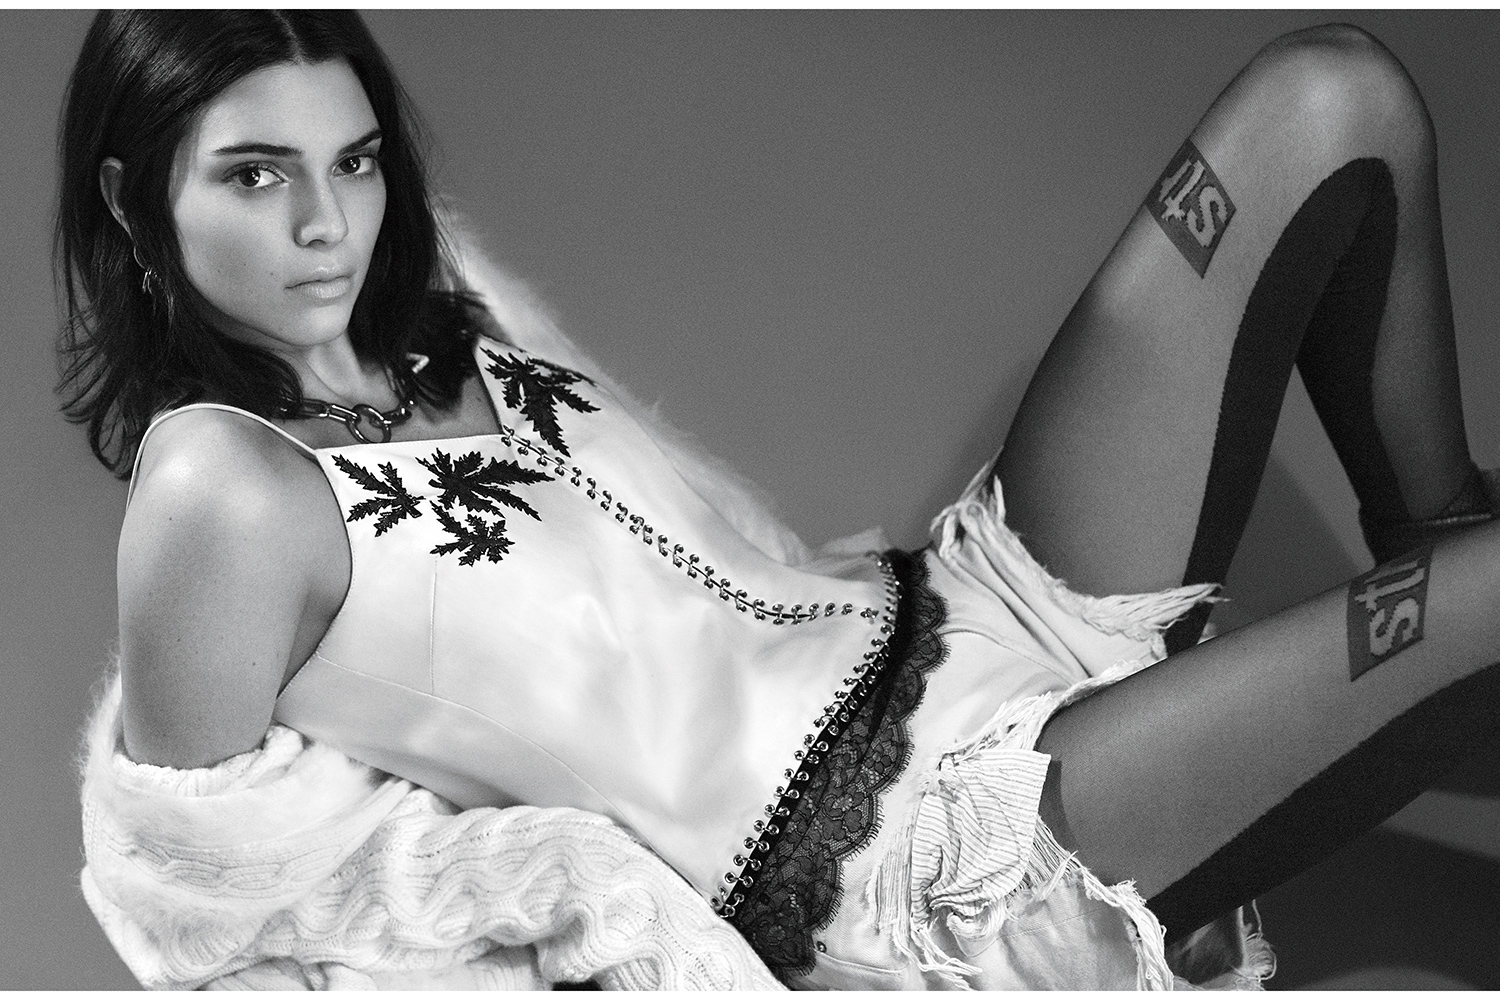 Kendall Jenner Covers Vogue Magazine & People Are Kinda ...